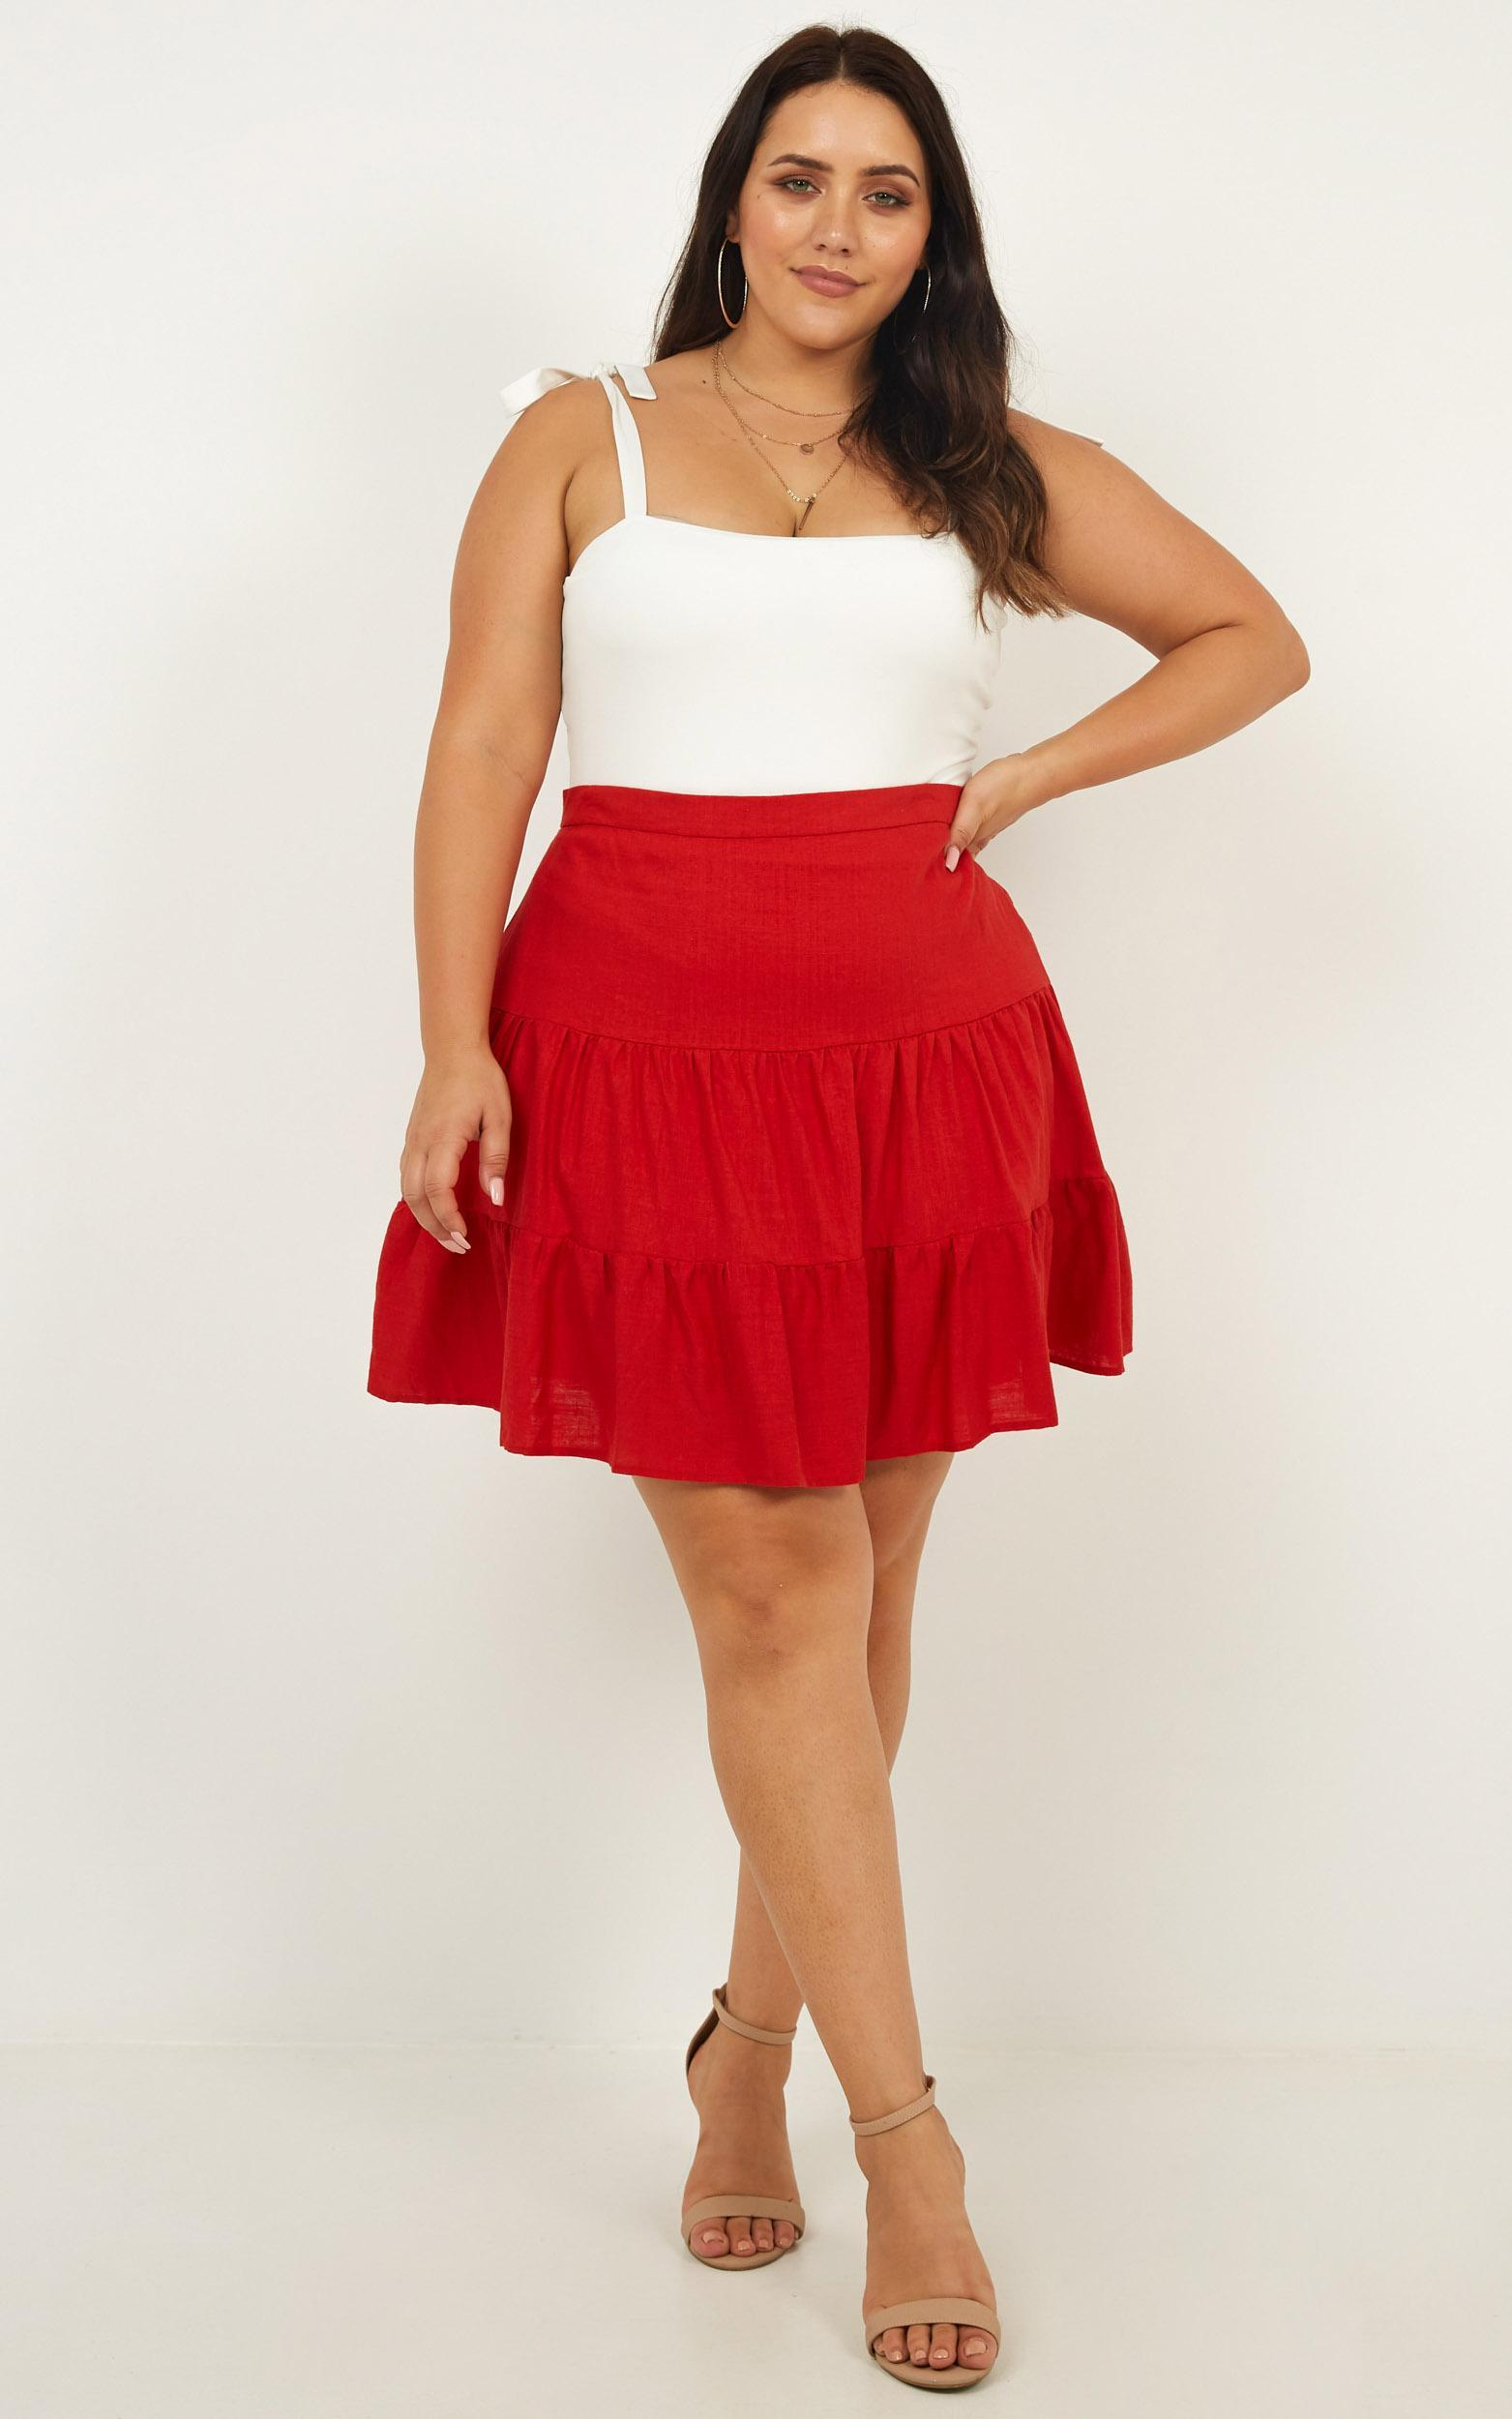 Summer Ready Skirt in Red Linen Look - 12, RED4, hi-res image number null